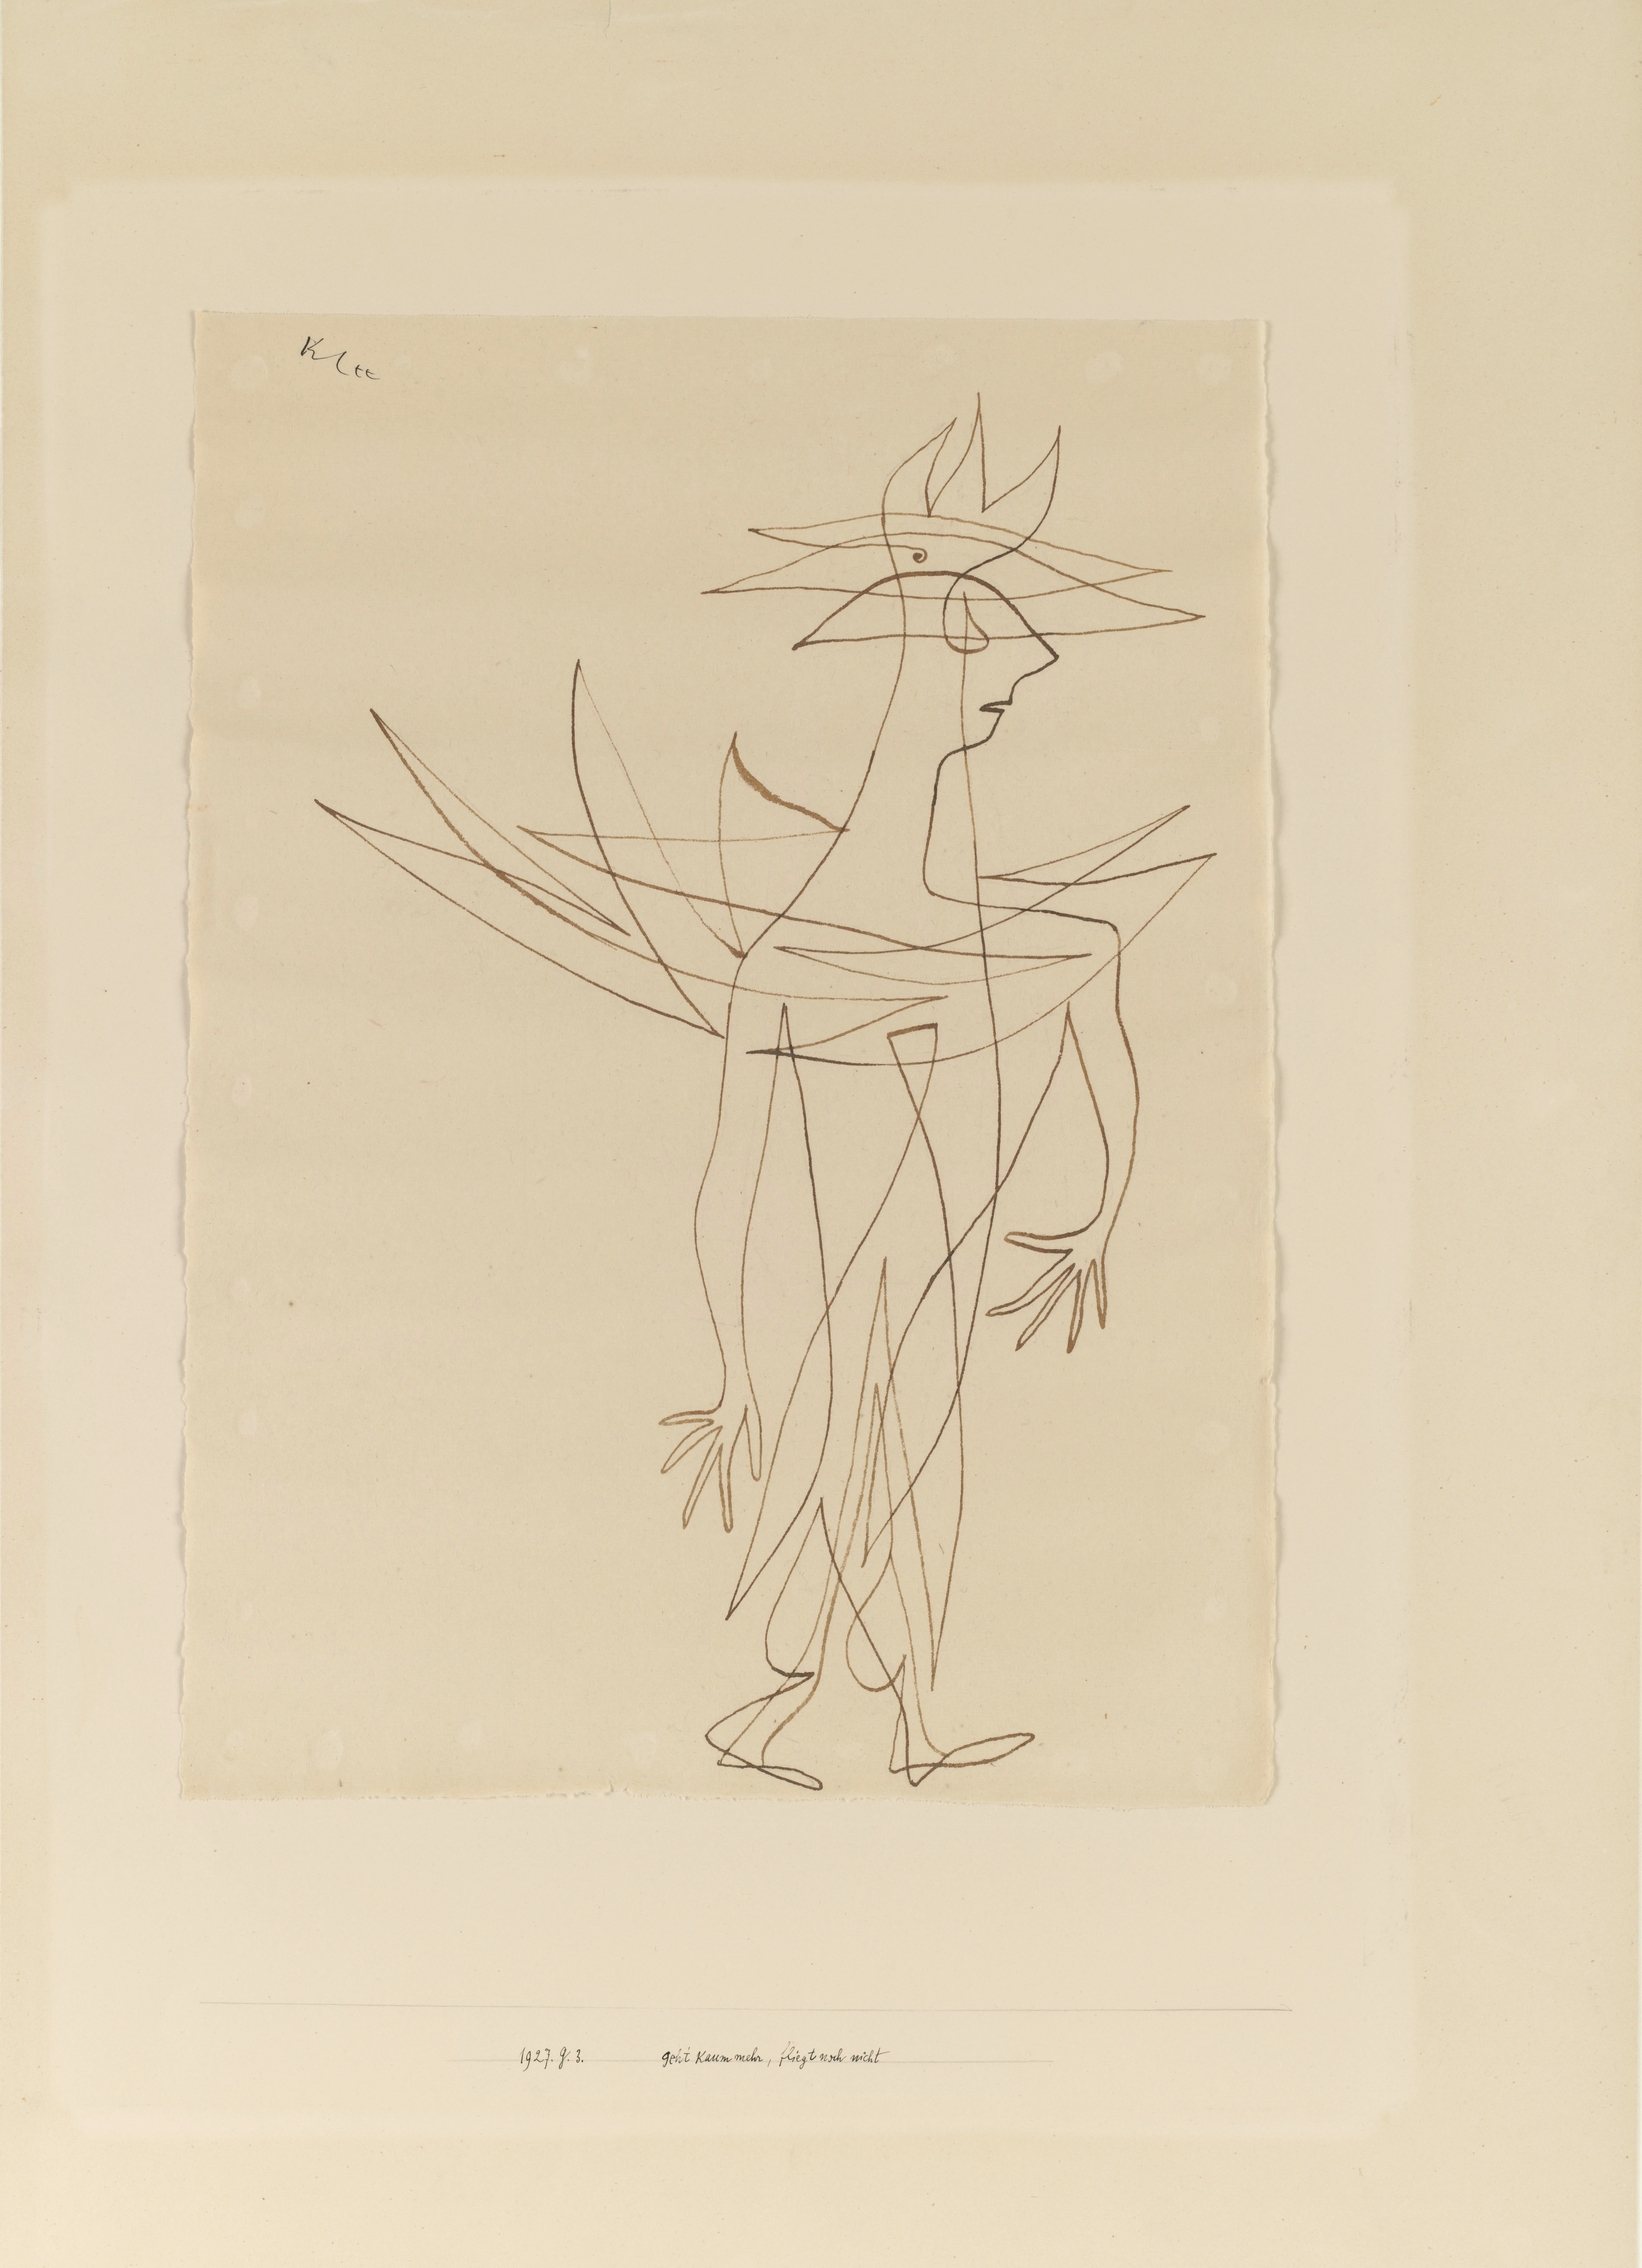 Paul Klee, Geht kaum mehr, fliegt noch nicht, 1927 © Imaging Department / President and Fellows of Harvard College